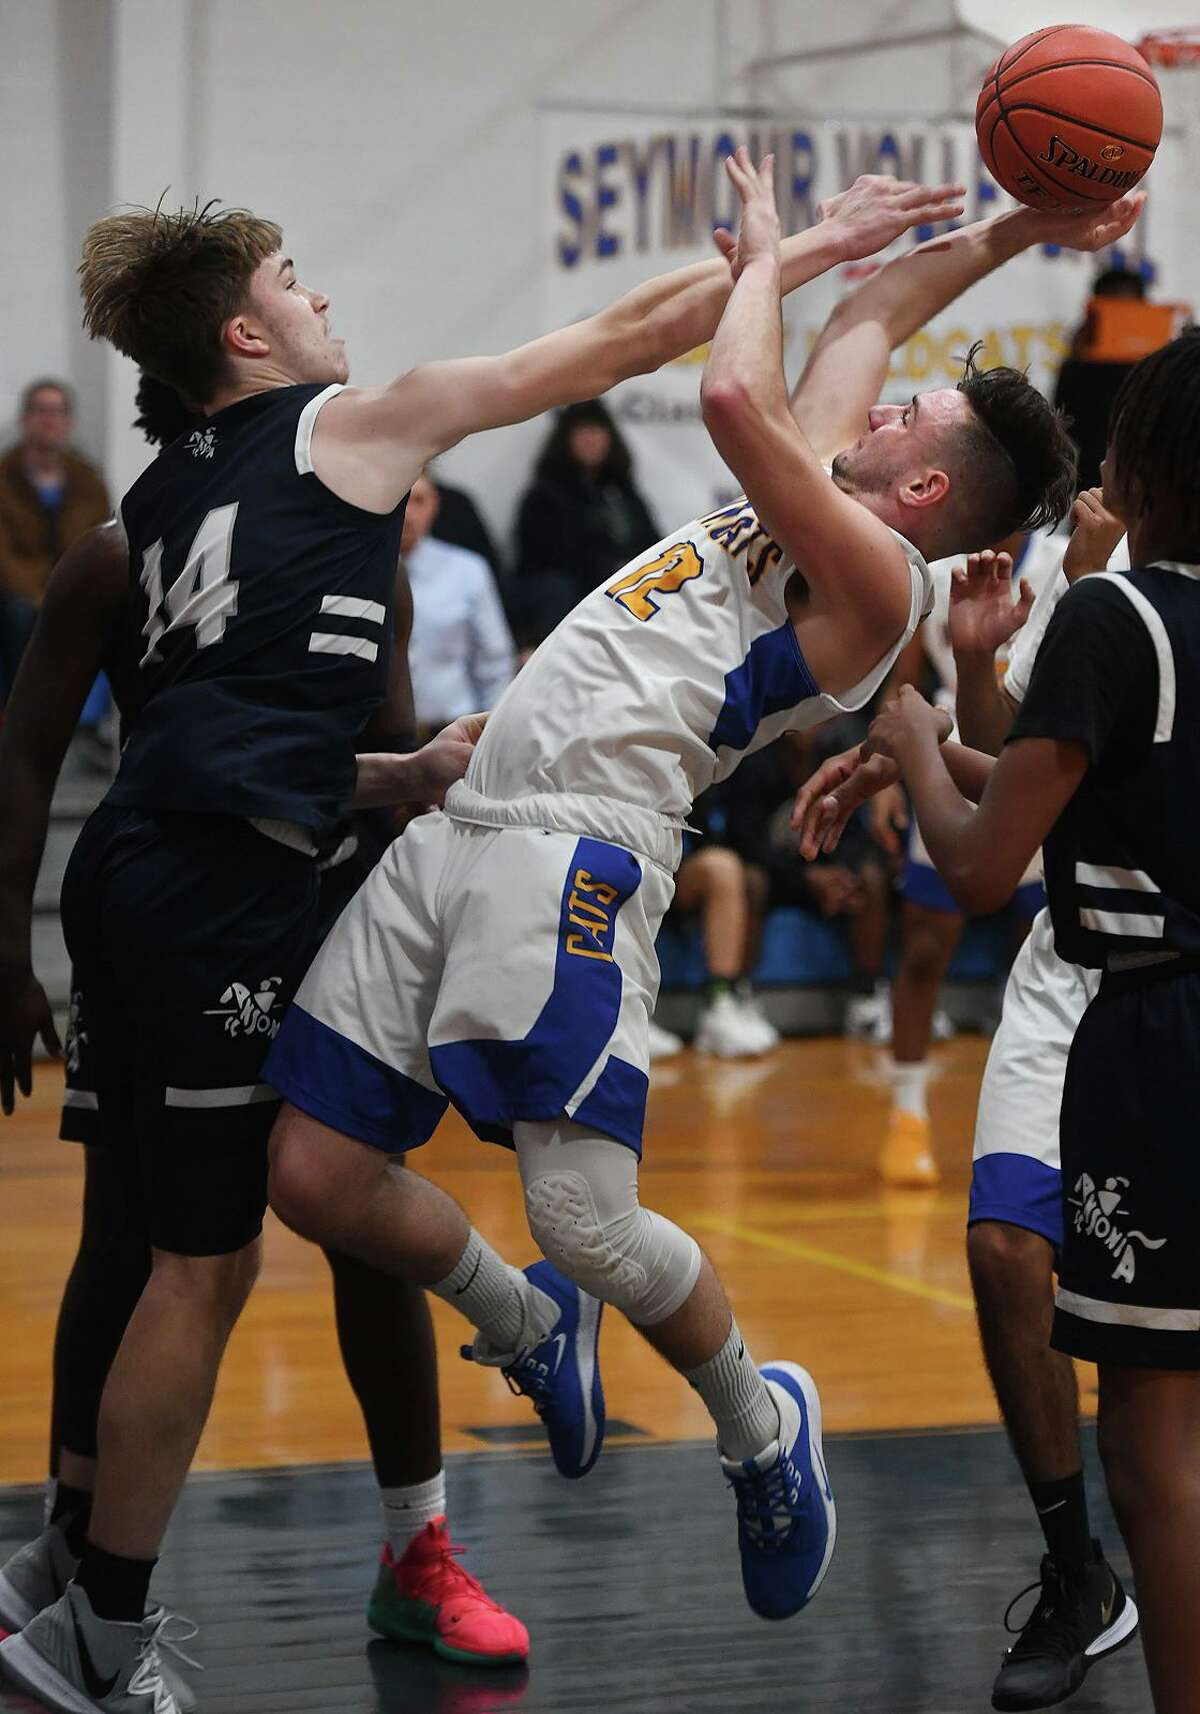 Ansonia's Noah Wagnblas, left, looks to block a shot in the lane by Seymour's Matthew Oczkowski during the first half of their boys basketball game on Monday at Seymour High School.